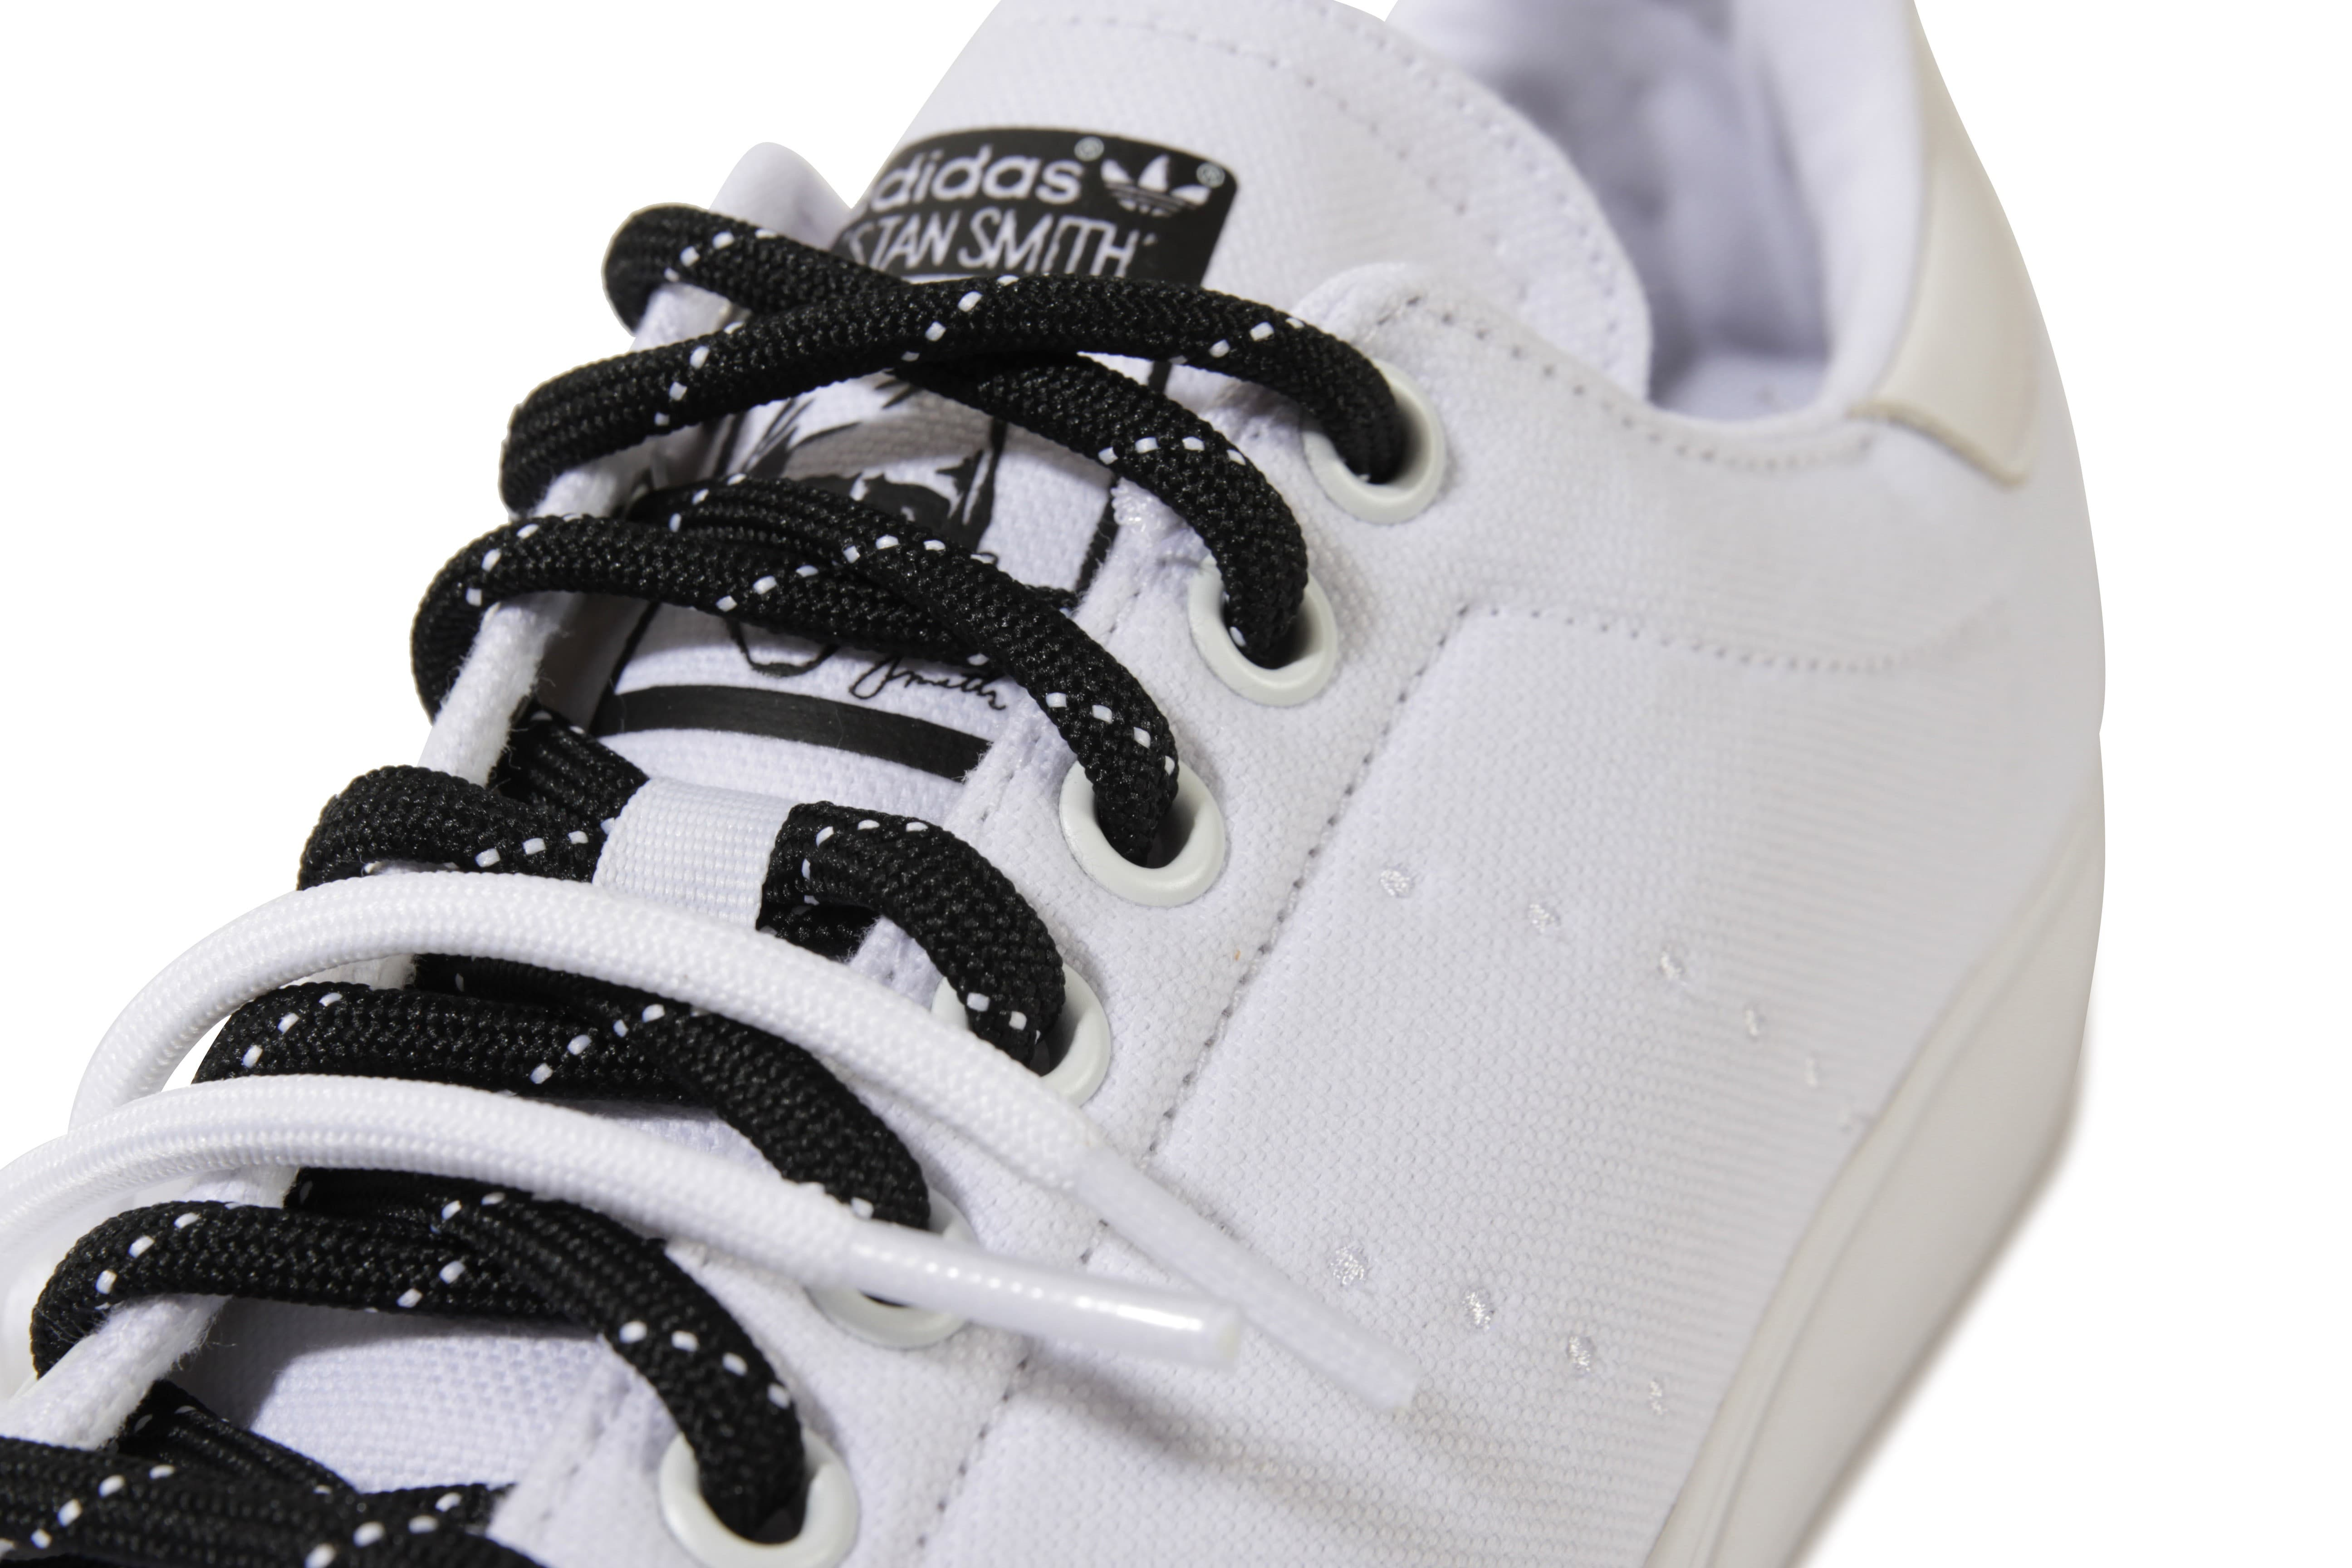 adidas stan smith toile blanche chaussures baskets homme. Black Bedroom Furniture Sets. Home Design Ideas